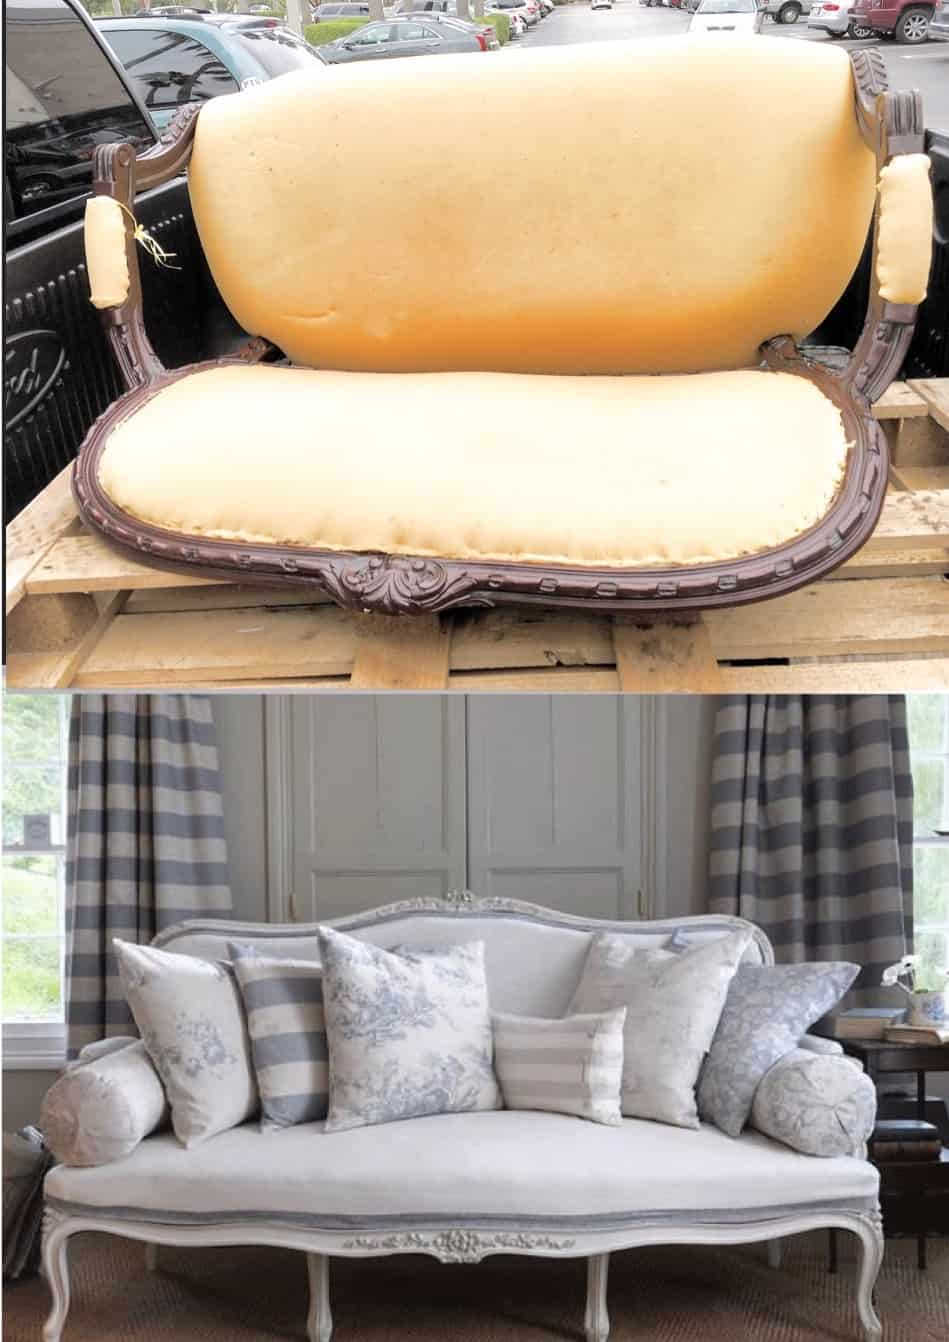 reupholstering sofas sofa steam cleaning abu dhabi how to reupholster furniture 20 detailed tutorials shabbyfufu com no sew a